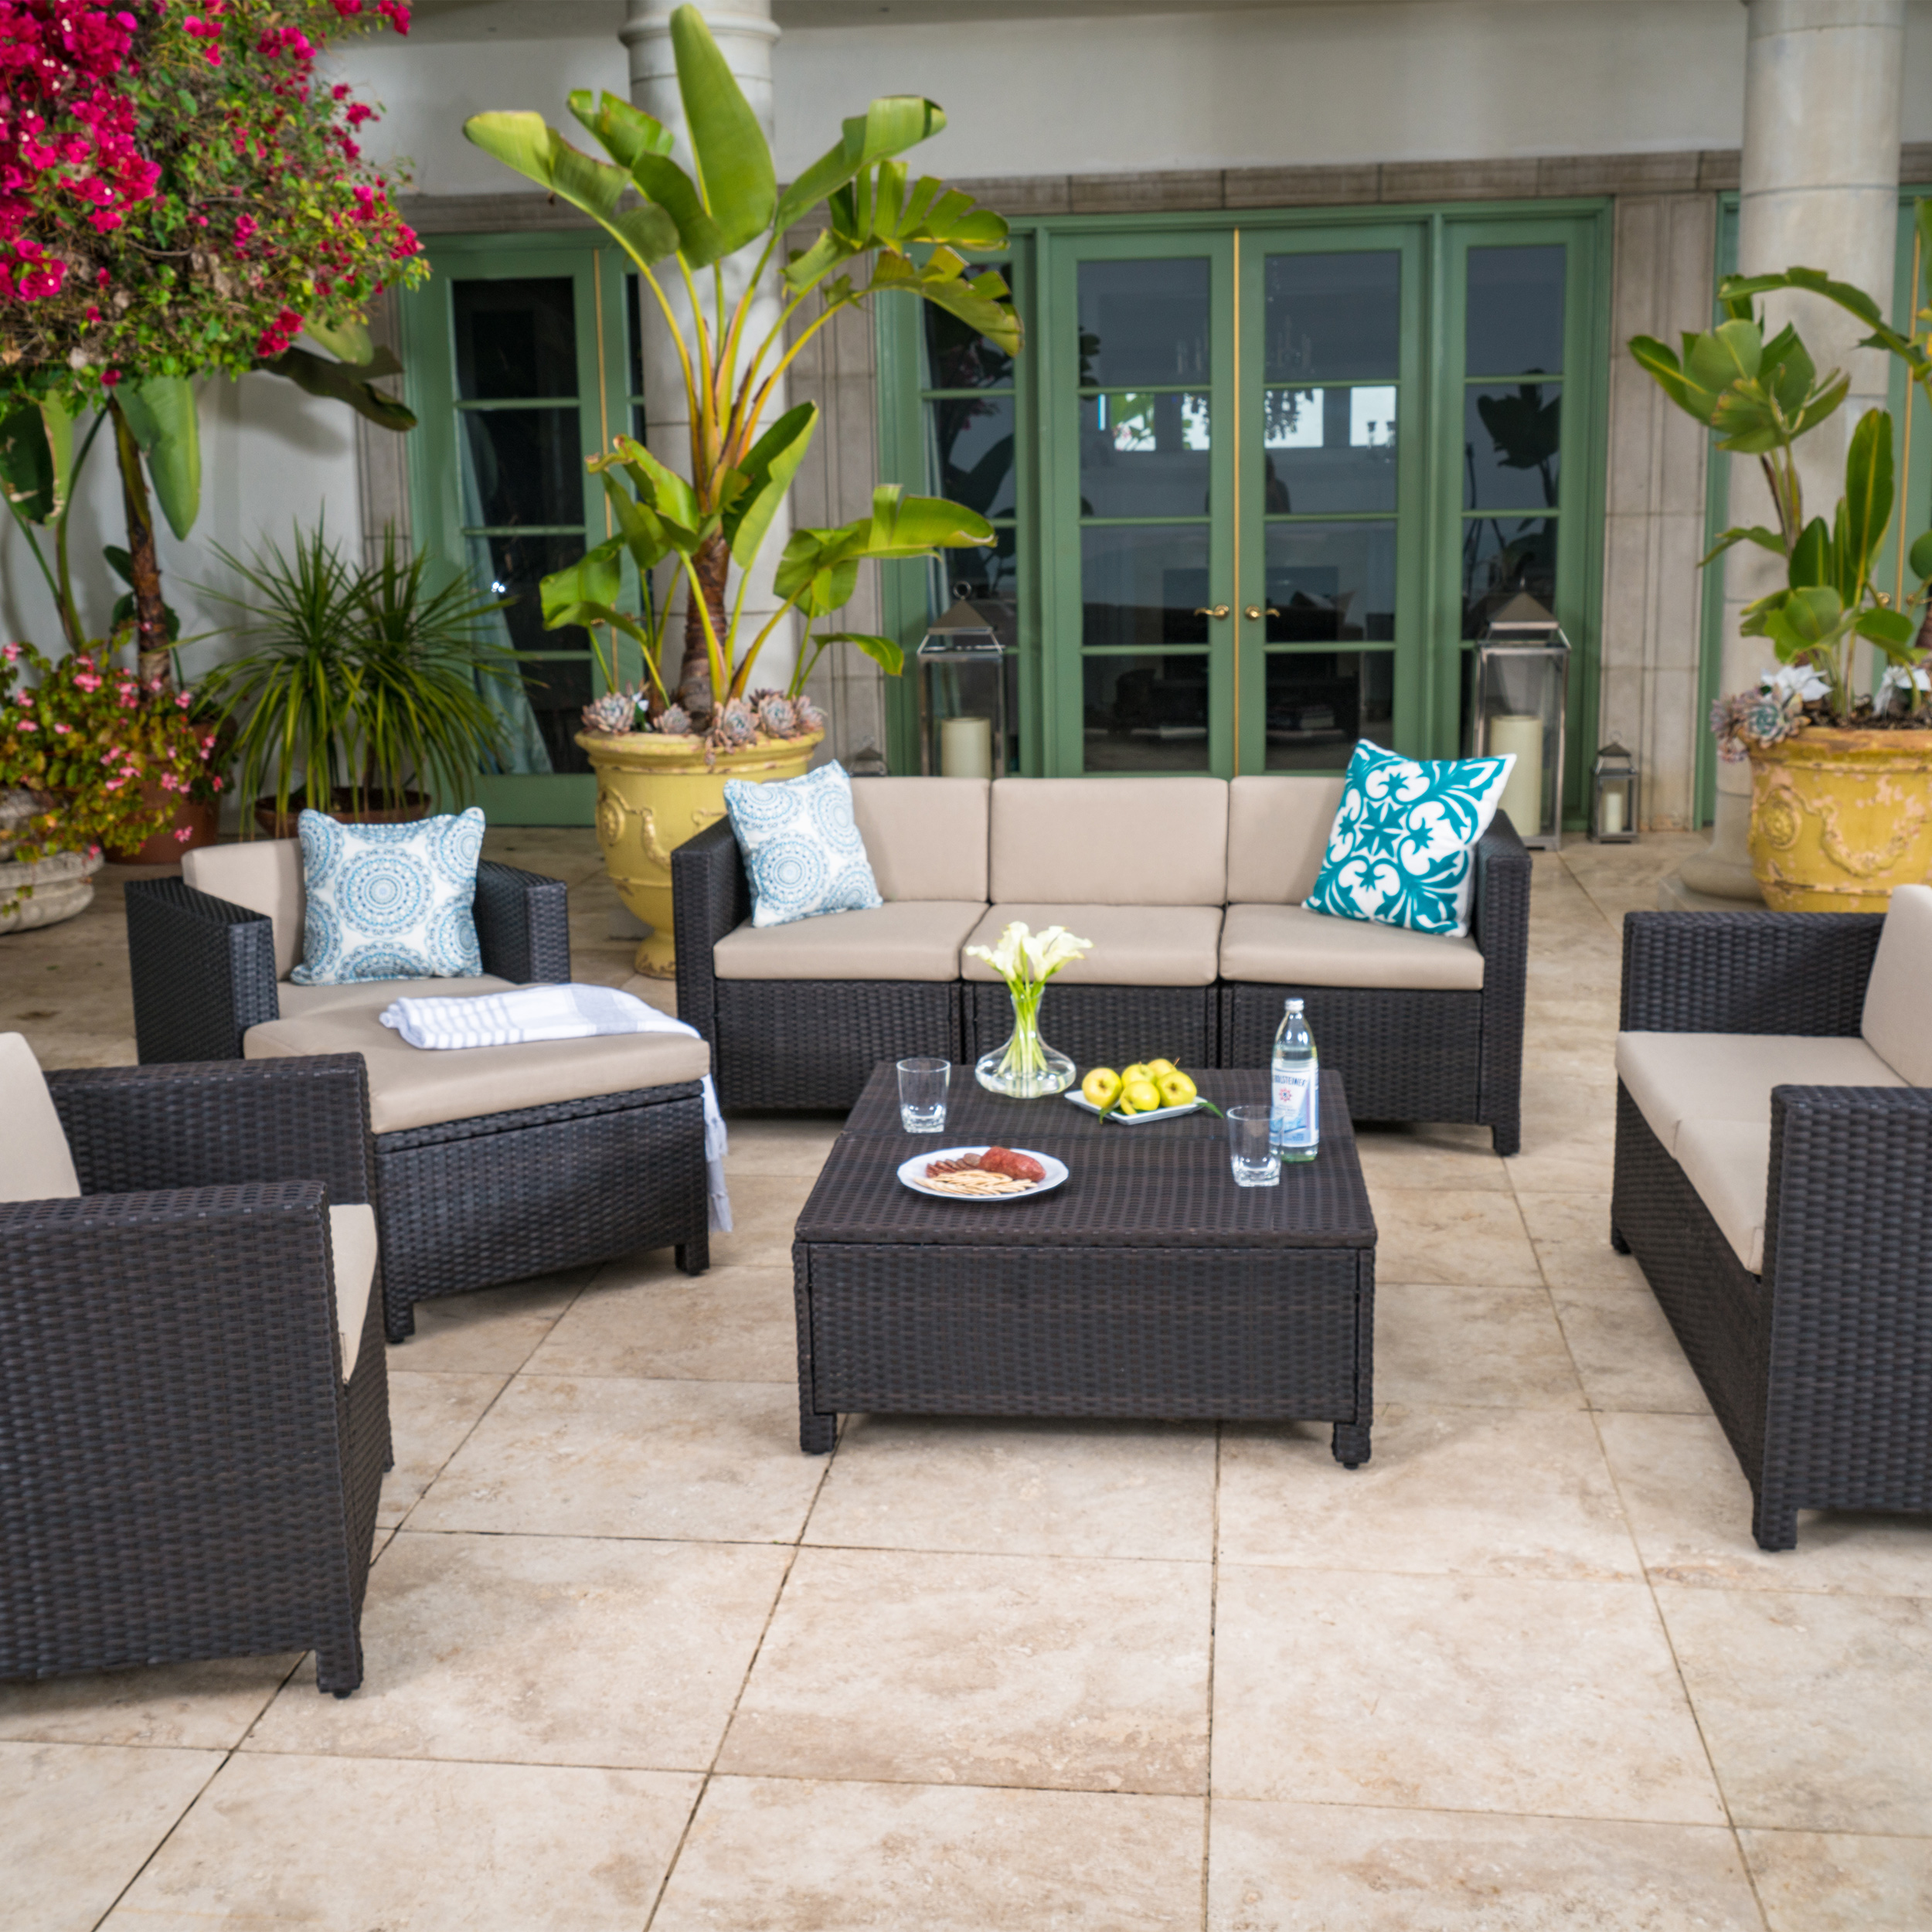 Cascada 9 Piece Outdoor Wicker Chat Set with Cushions, Dark Brown and Beige